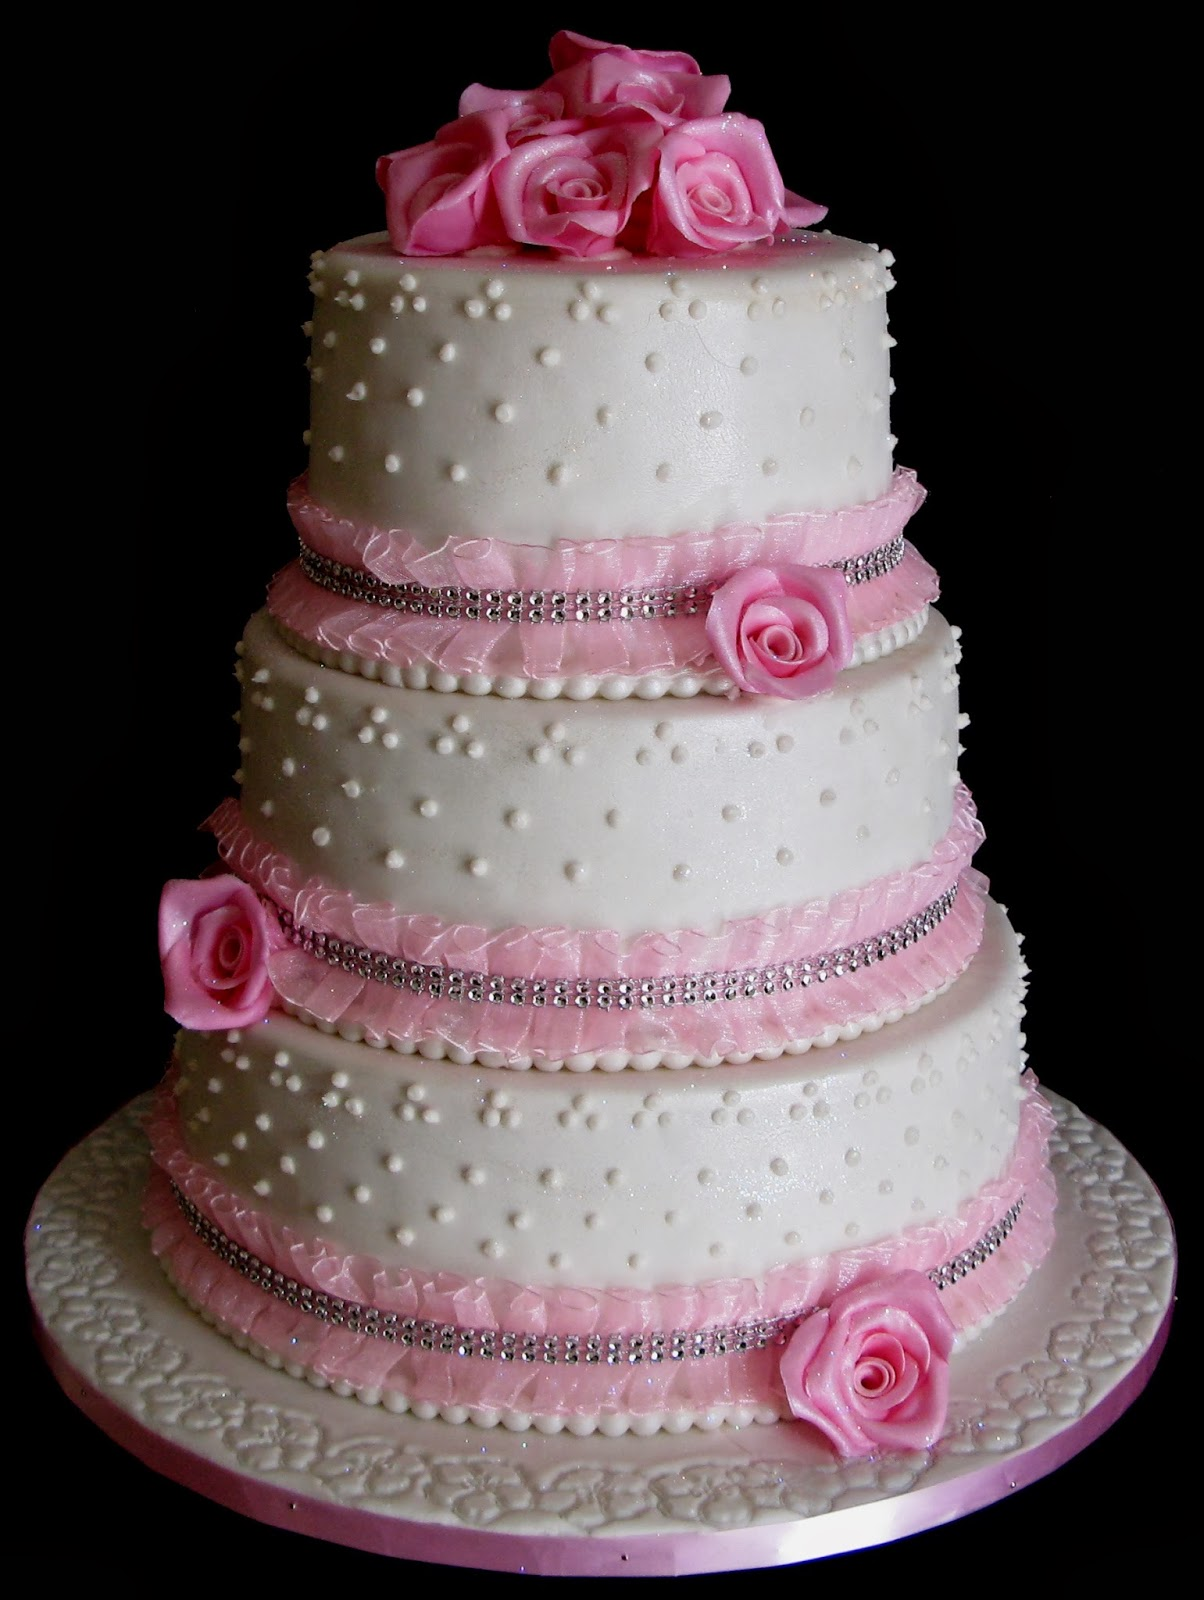 3 layered wedding cakes sugarcraft by soni three layer wedding cake pink roses 10196